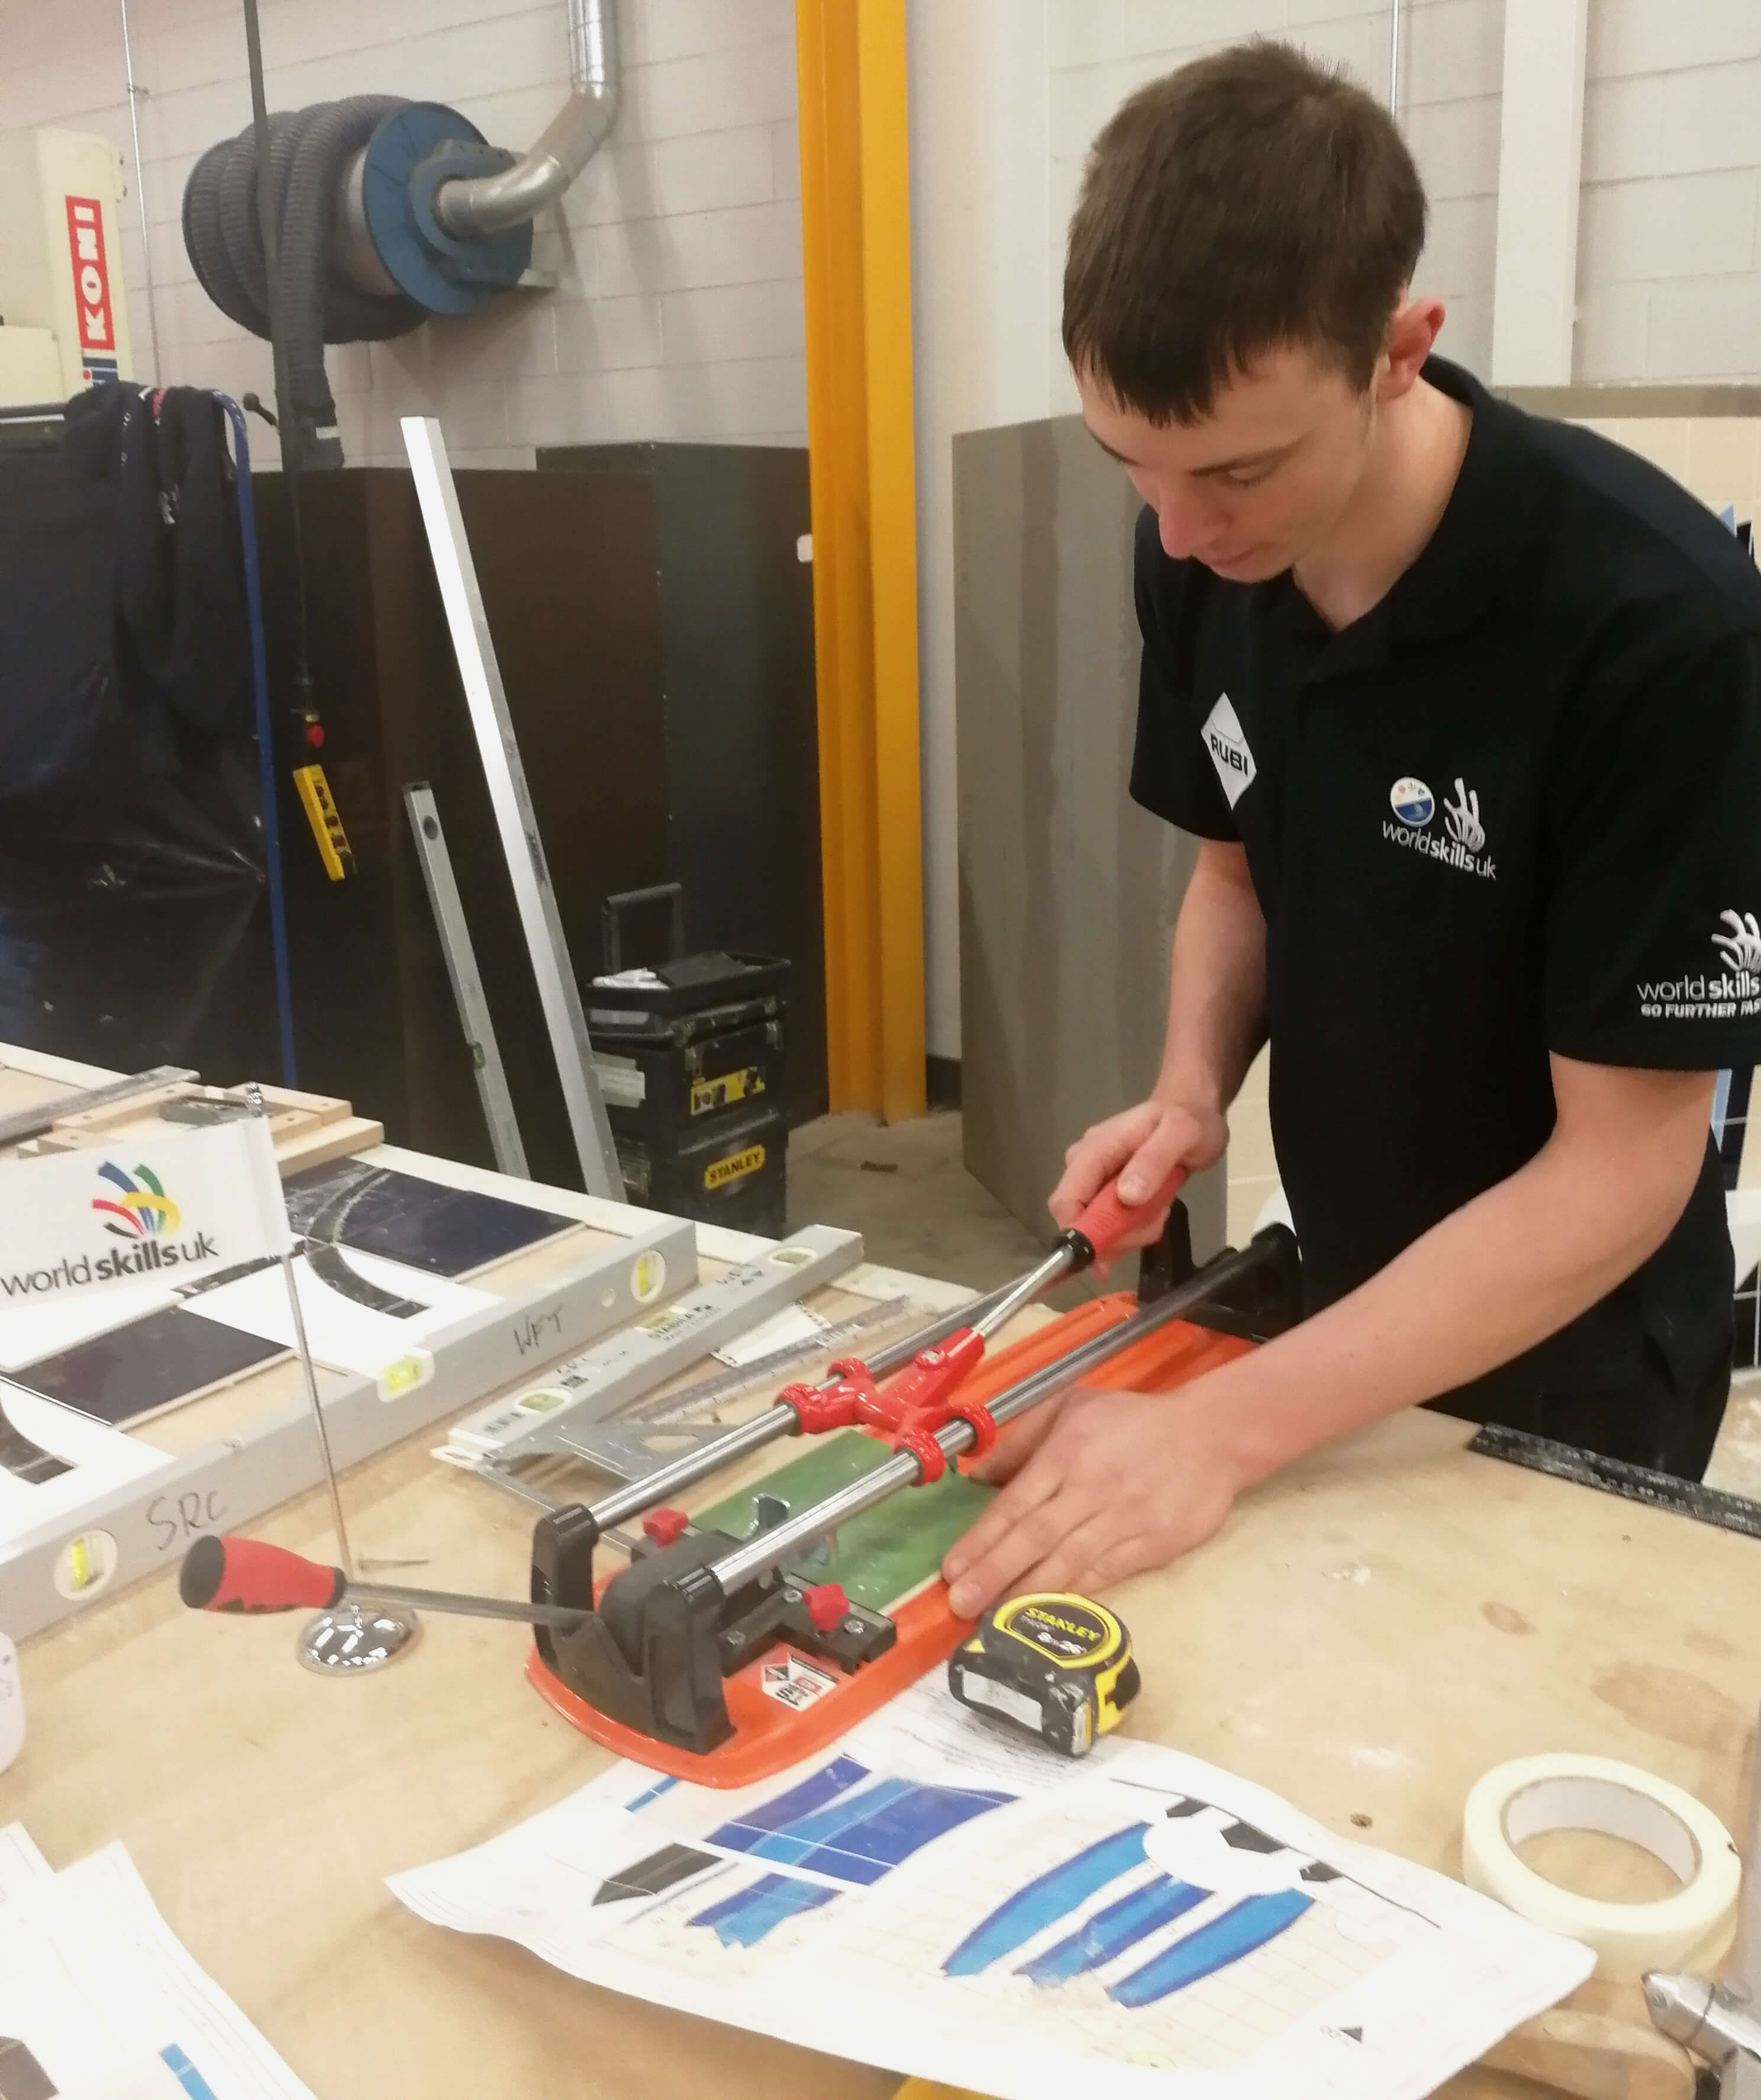 Mark Scott using a RUBI Manual Cutter during the team selection to represent UK at WorldSkills Kazan 2019.